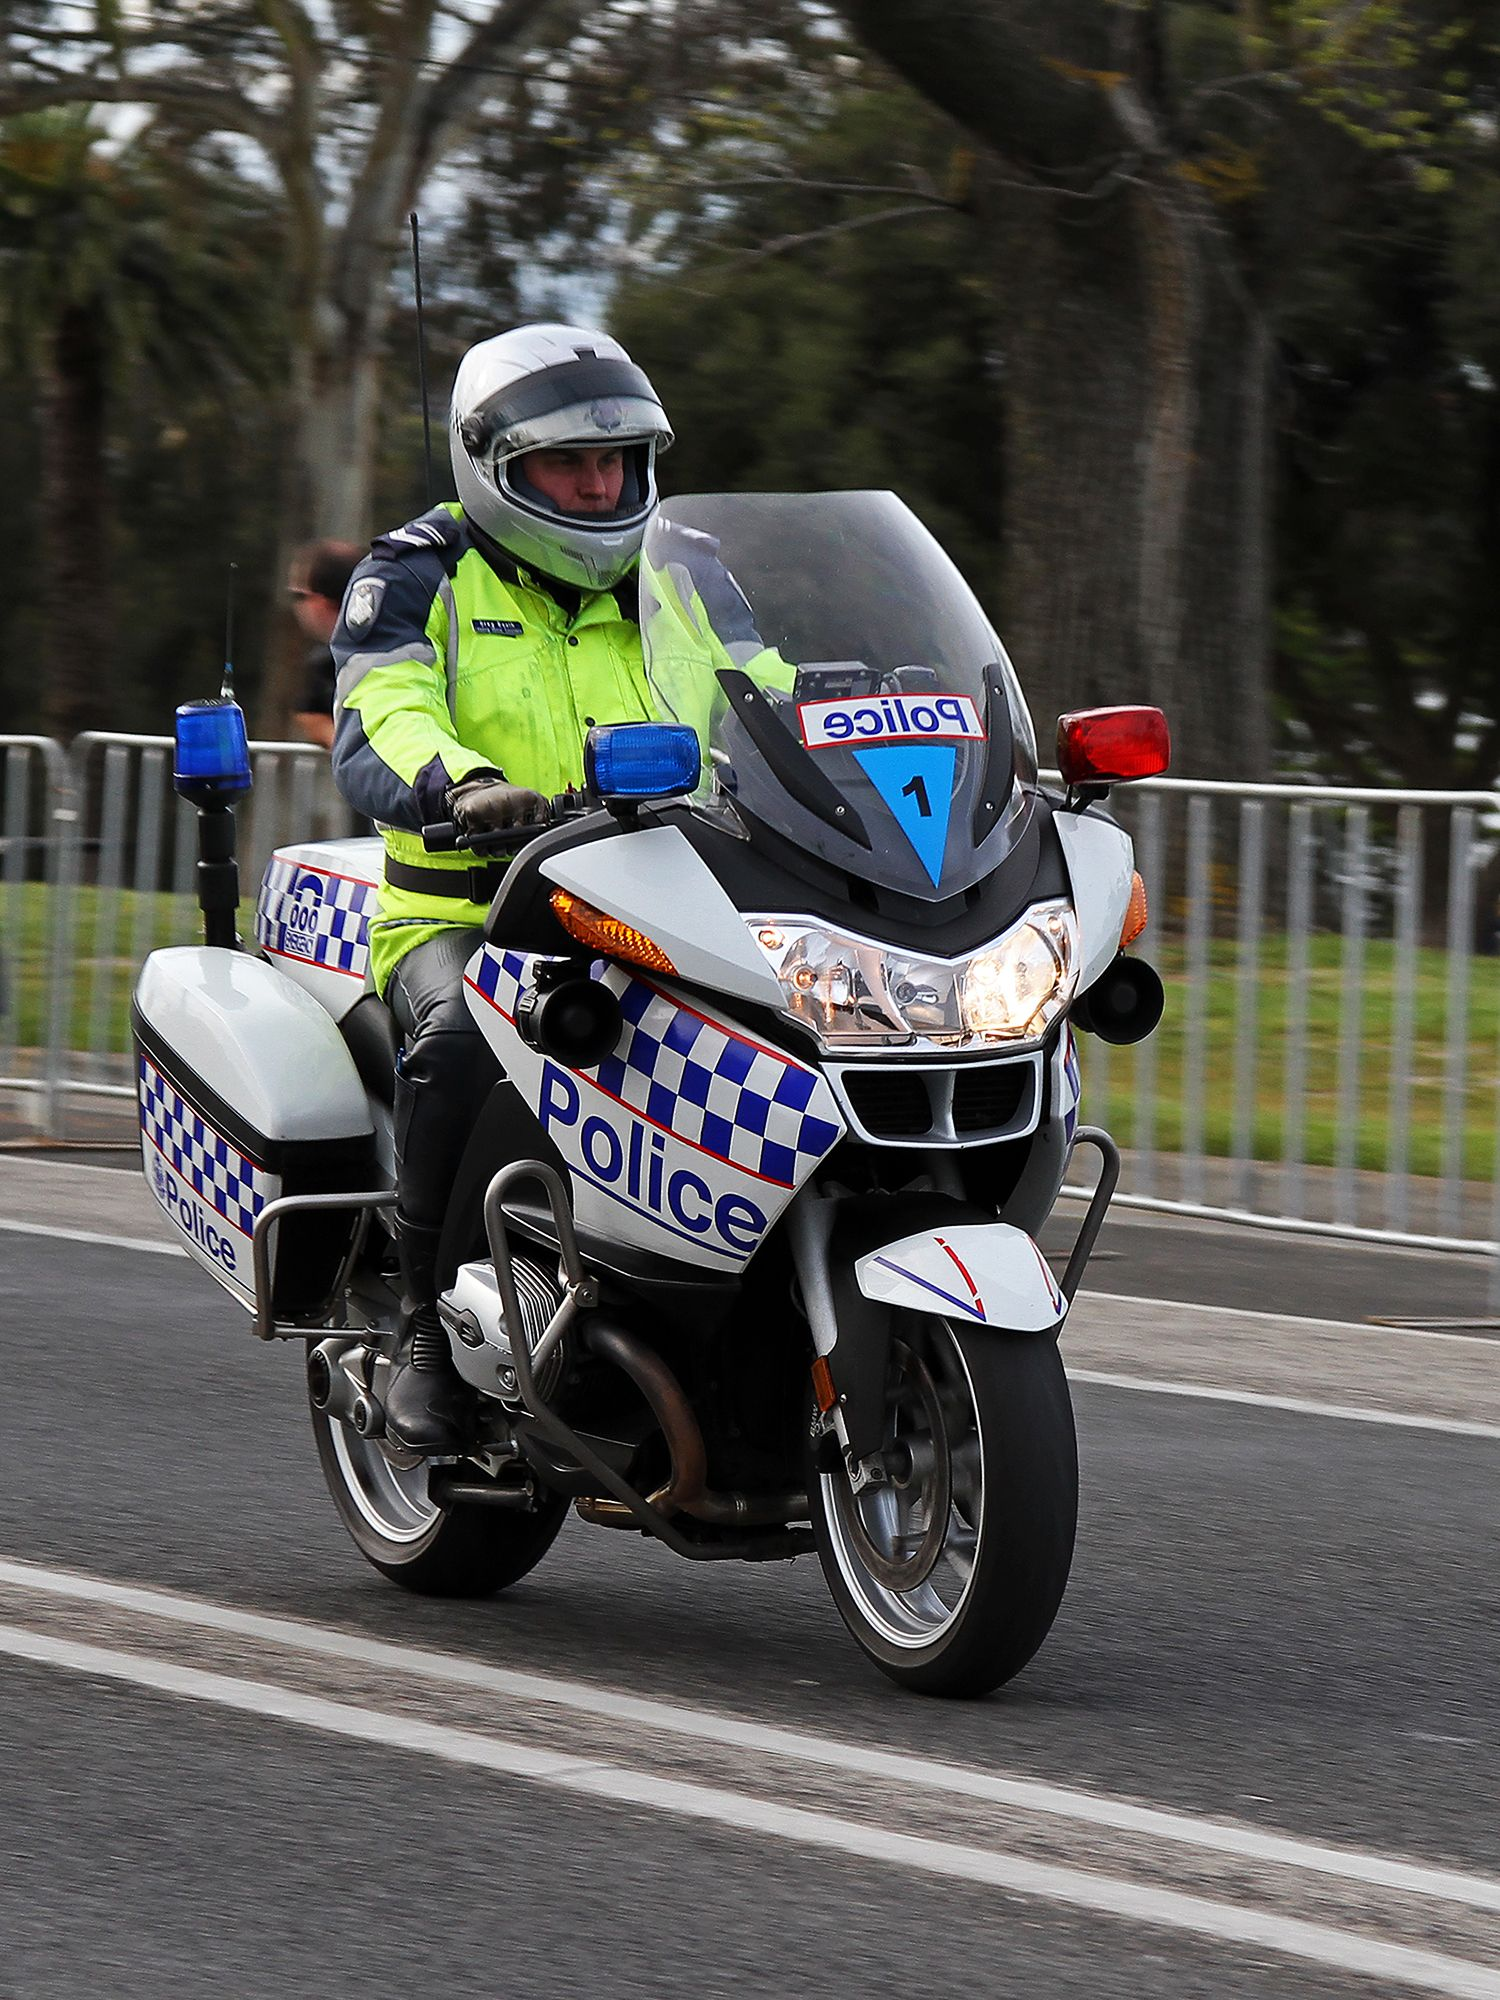 Image result for VIP escort bike